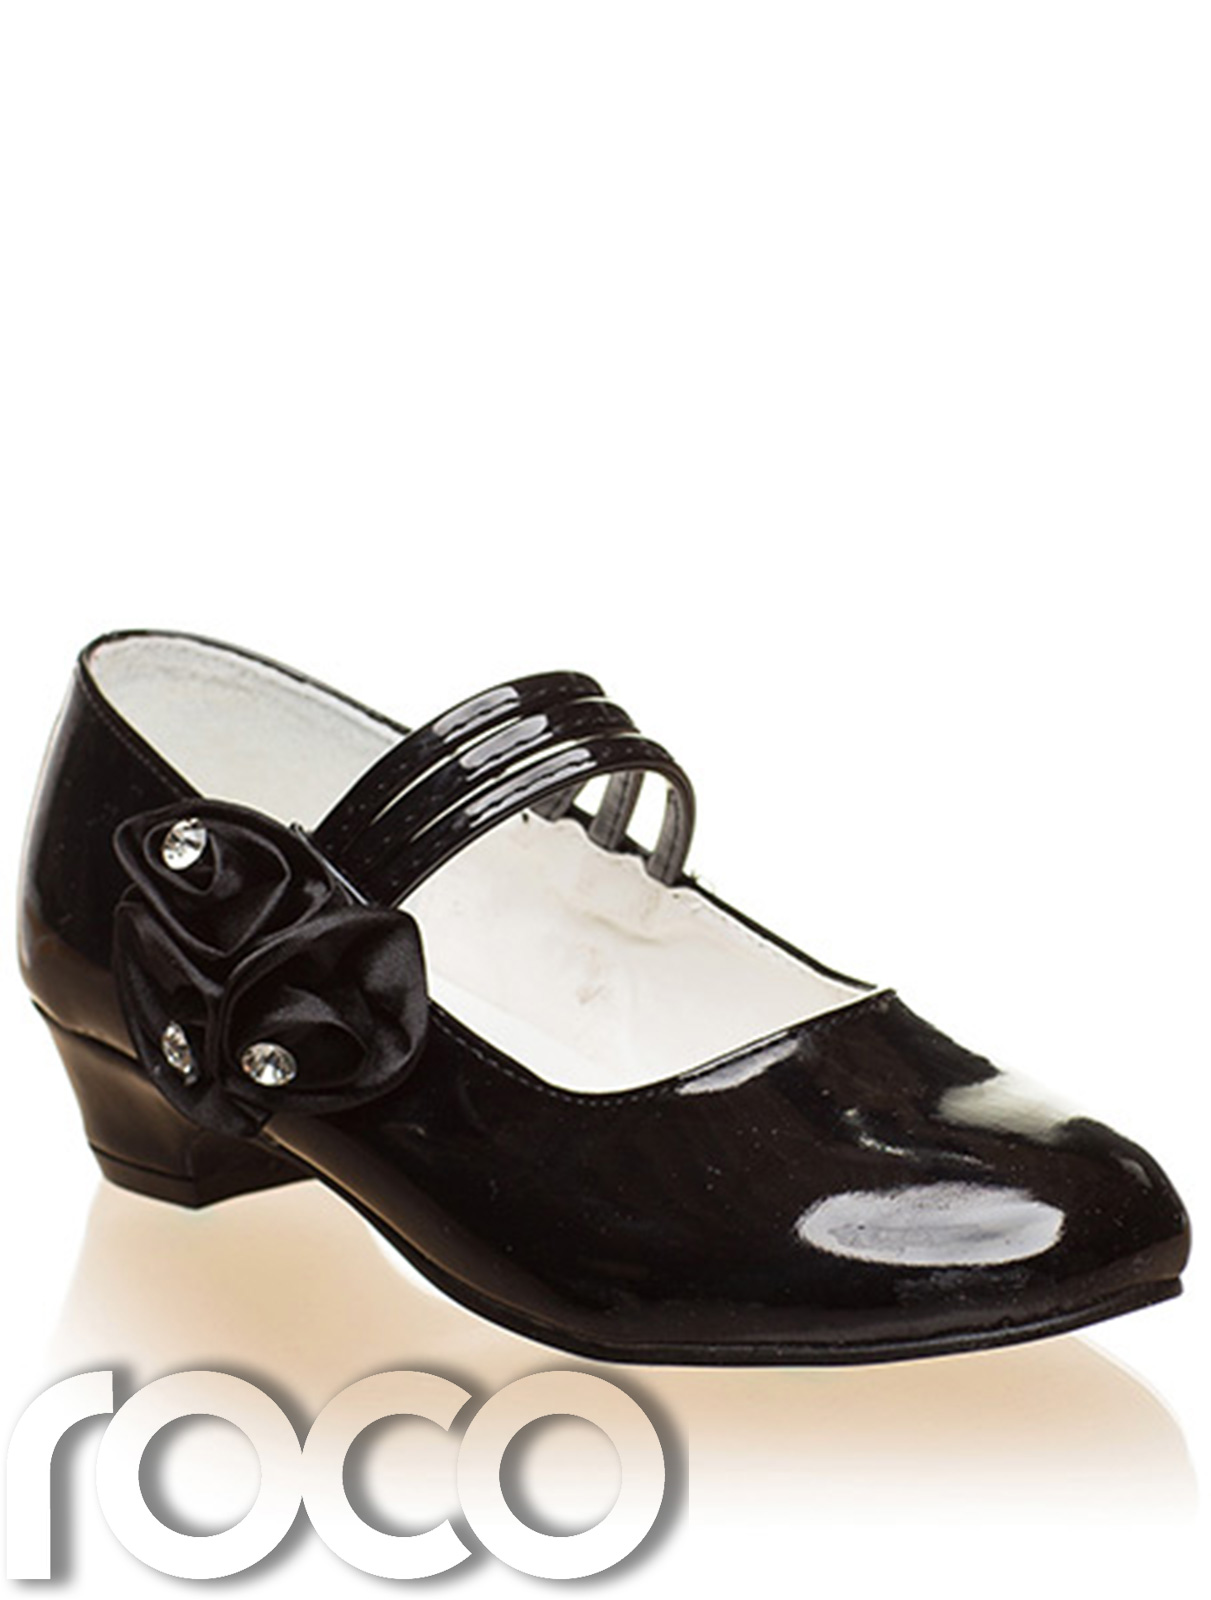 UK Kids Girls Shoes Strap Wedding Party Occasion Shoes White Black Shoes Size